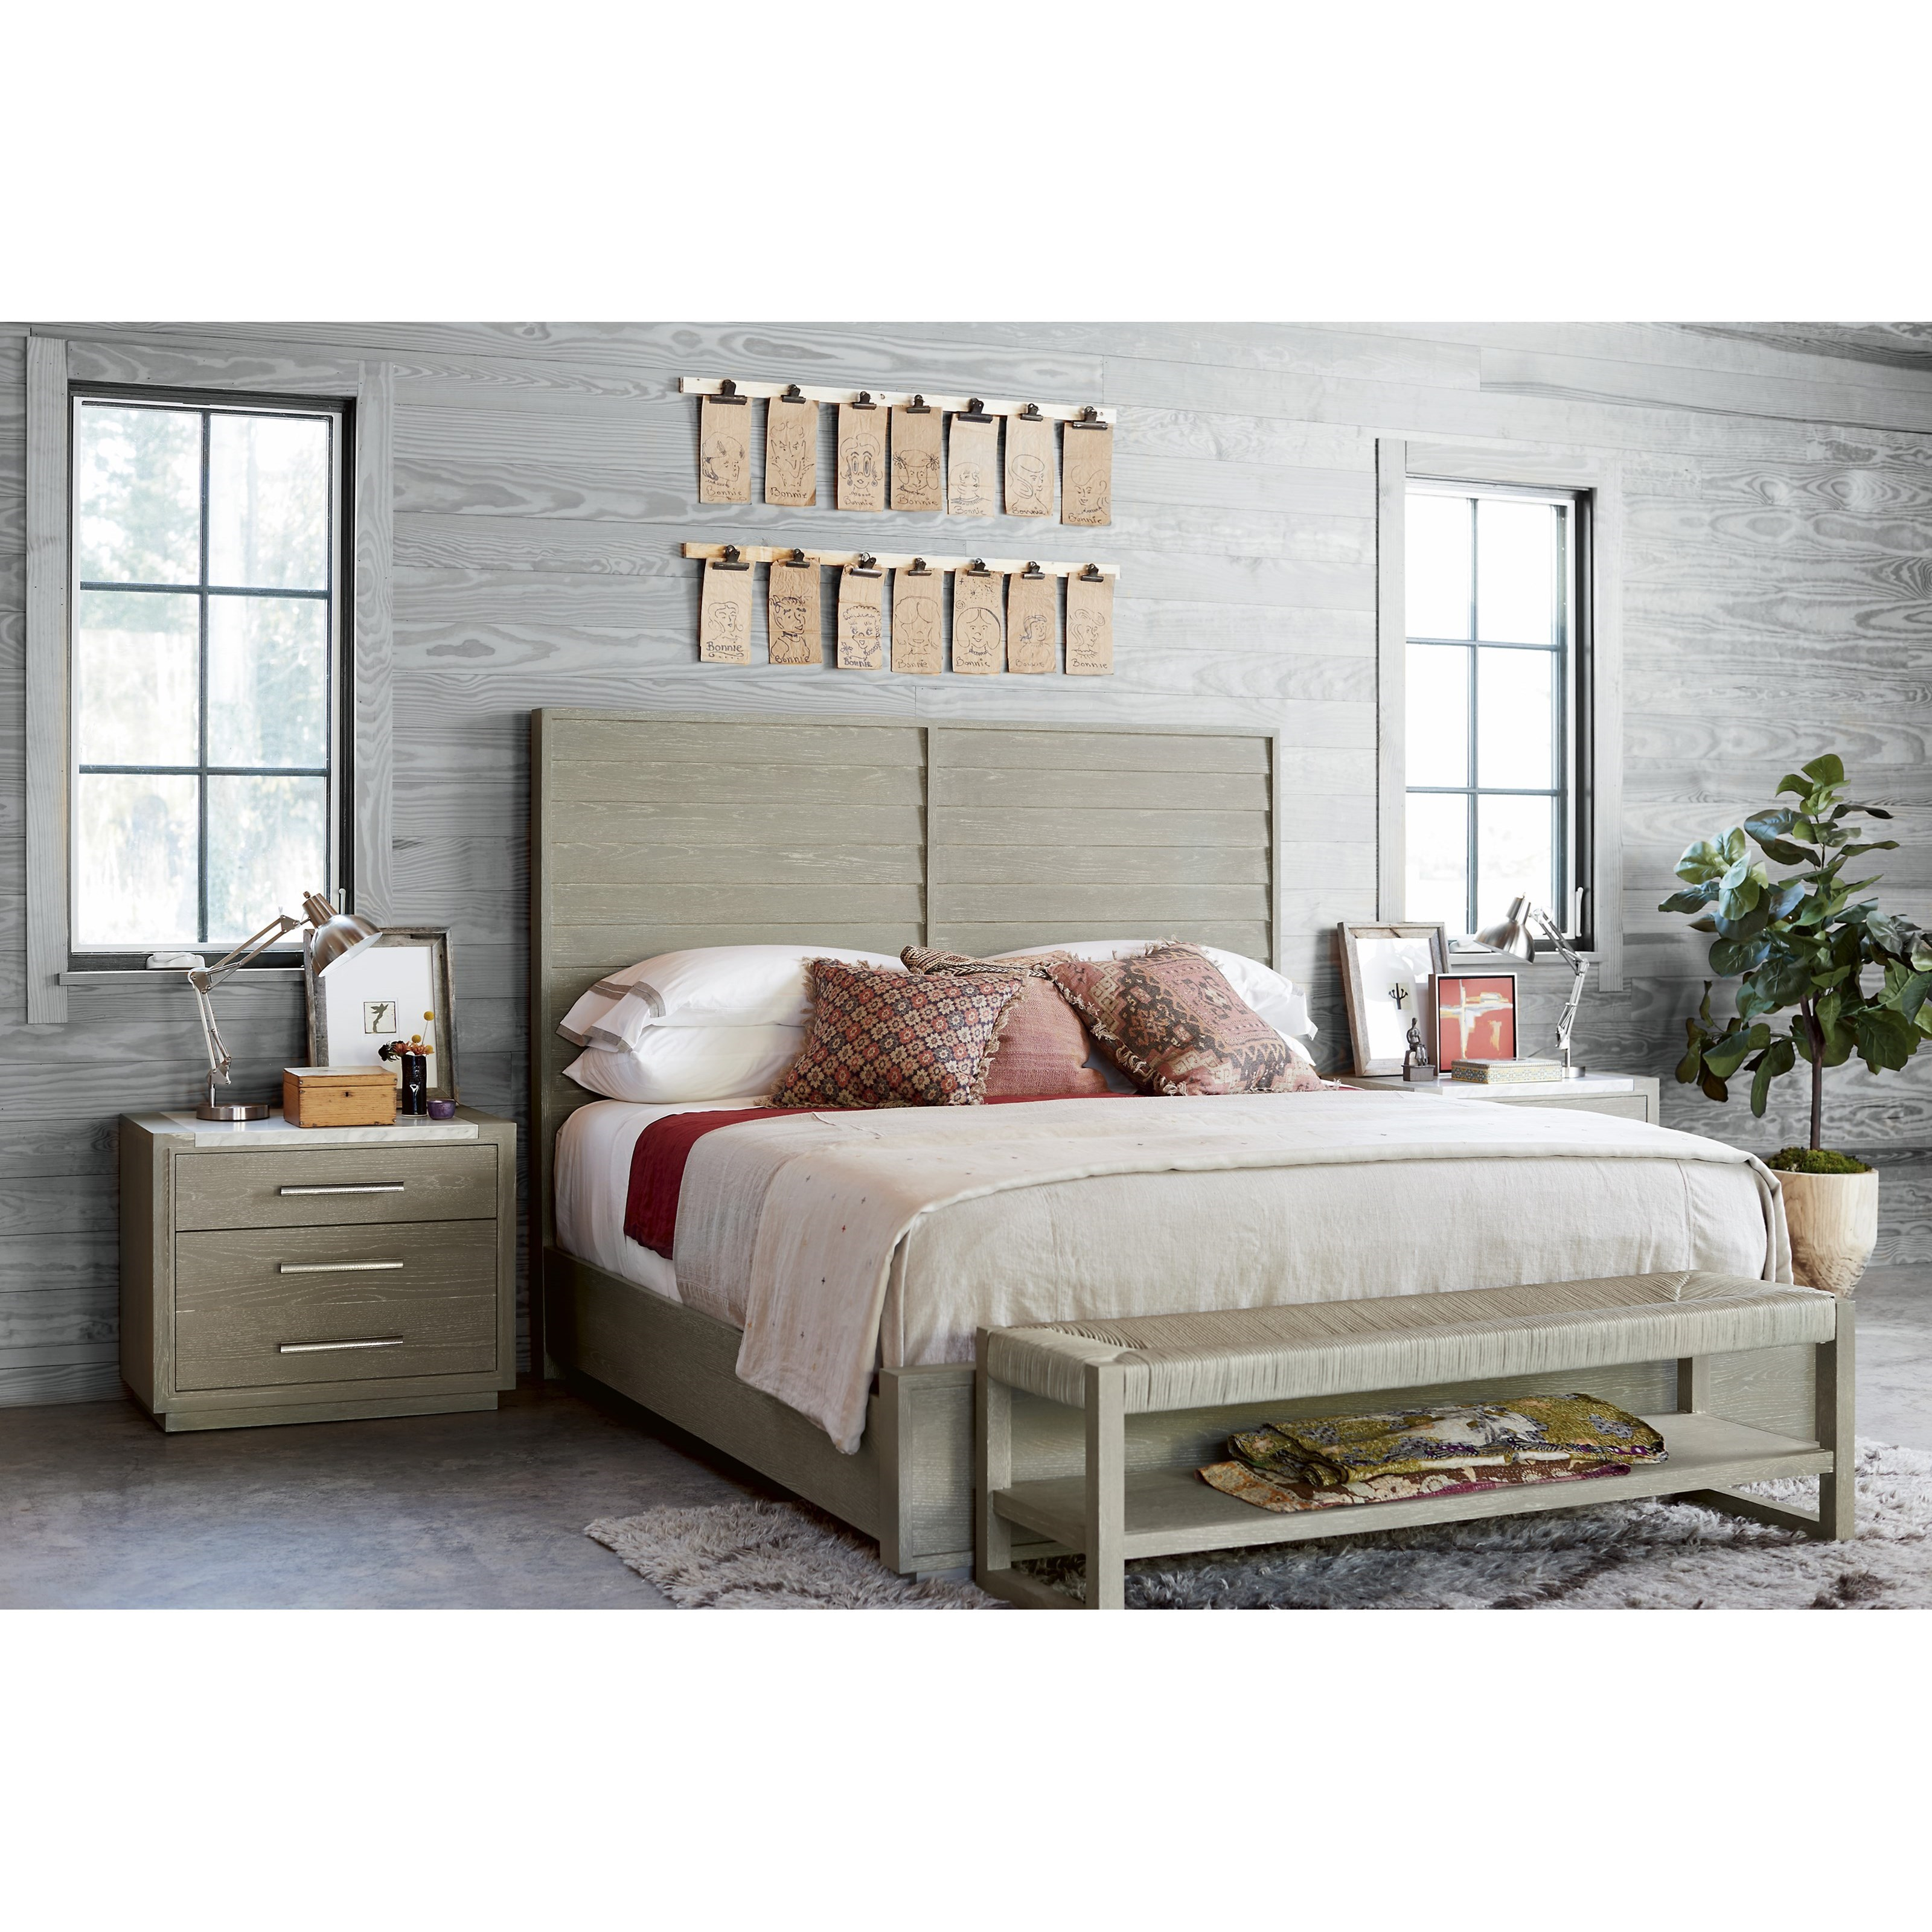 Zephyr Queen Bedroom Group by Universal at Powell's Furniture and Mattress